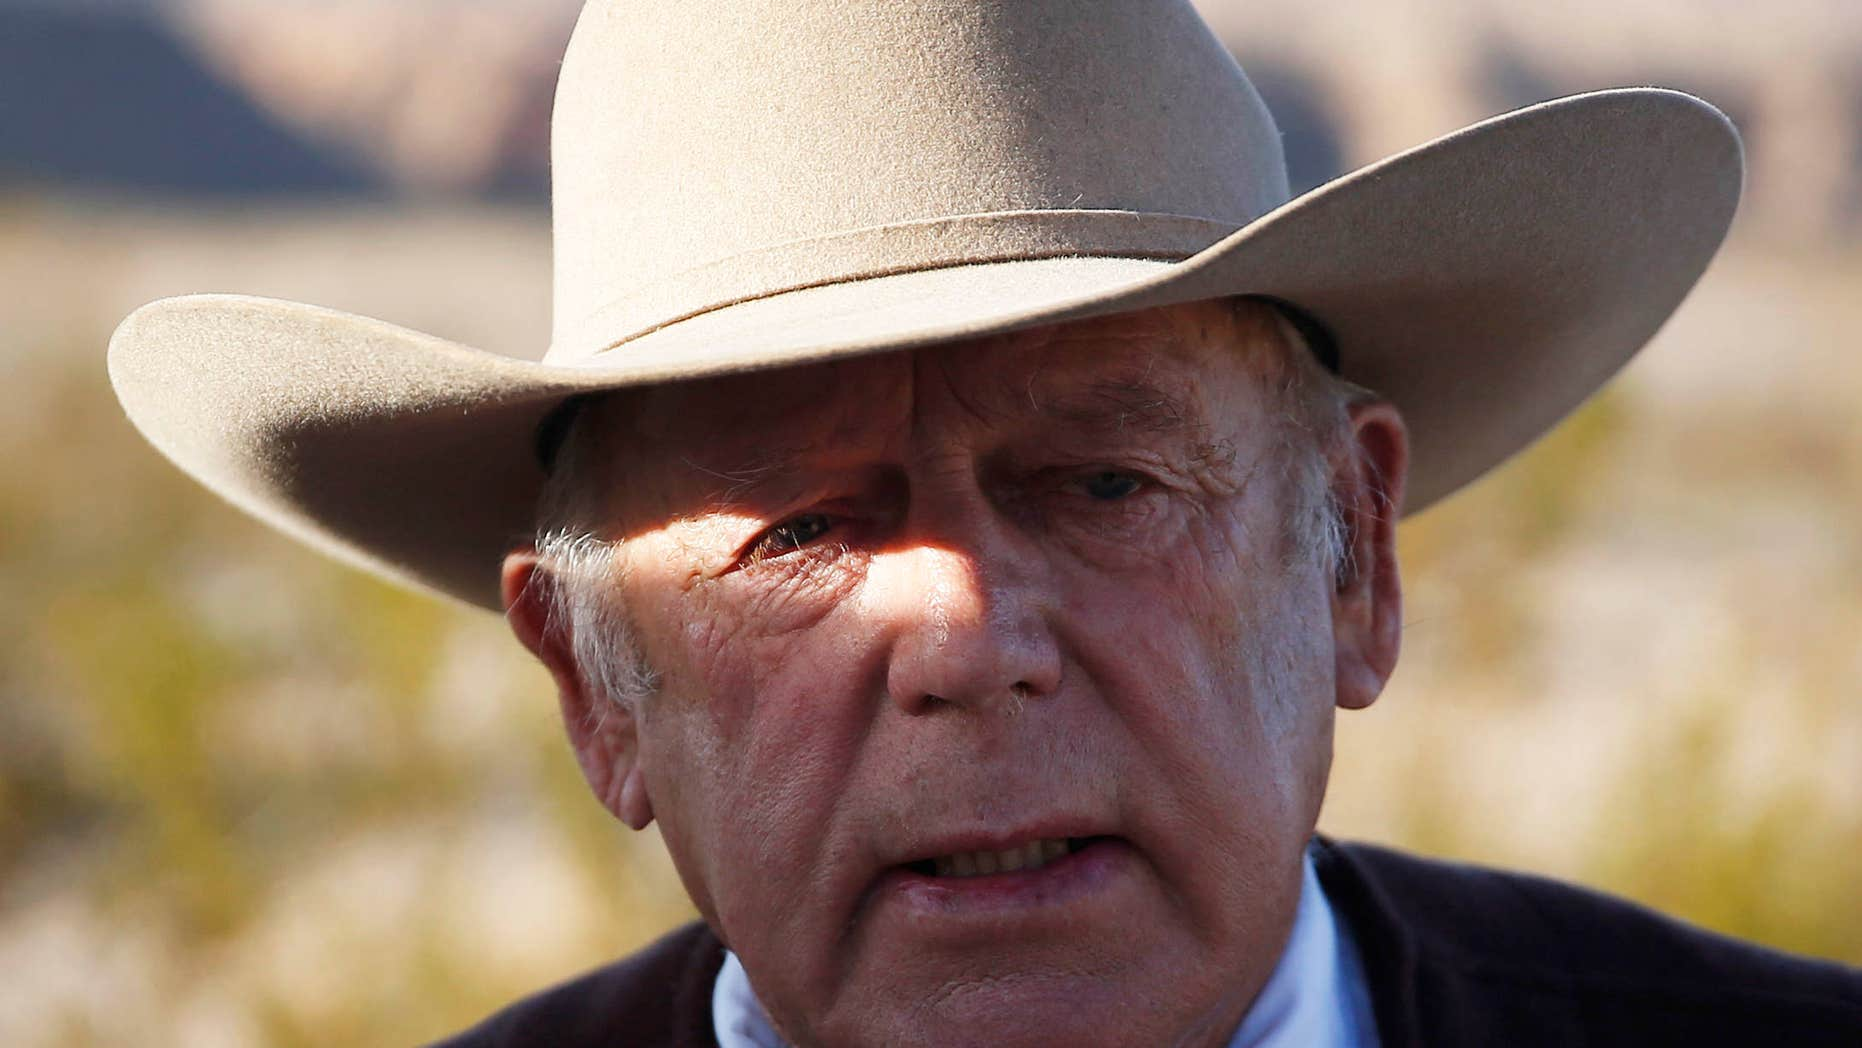 FILE - In a Wednesday, Jan. 27, 2016 file photo, rancher Cliven Bundy speaks to media while standing along the road near his ranch, in Bunkerville, Nev.